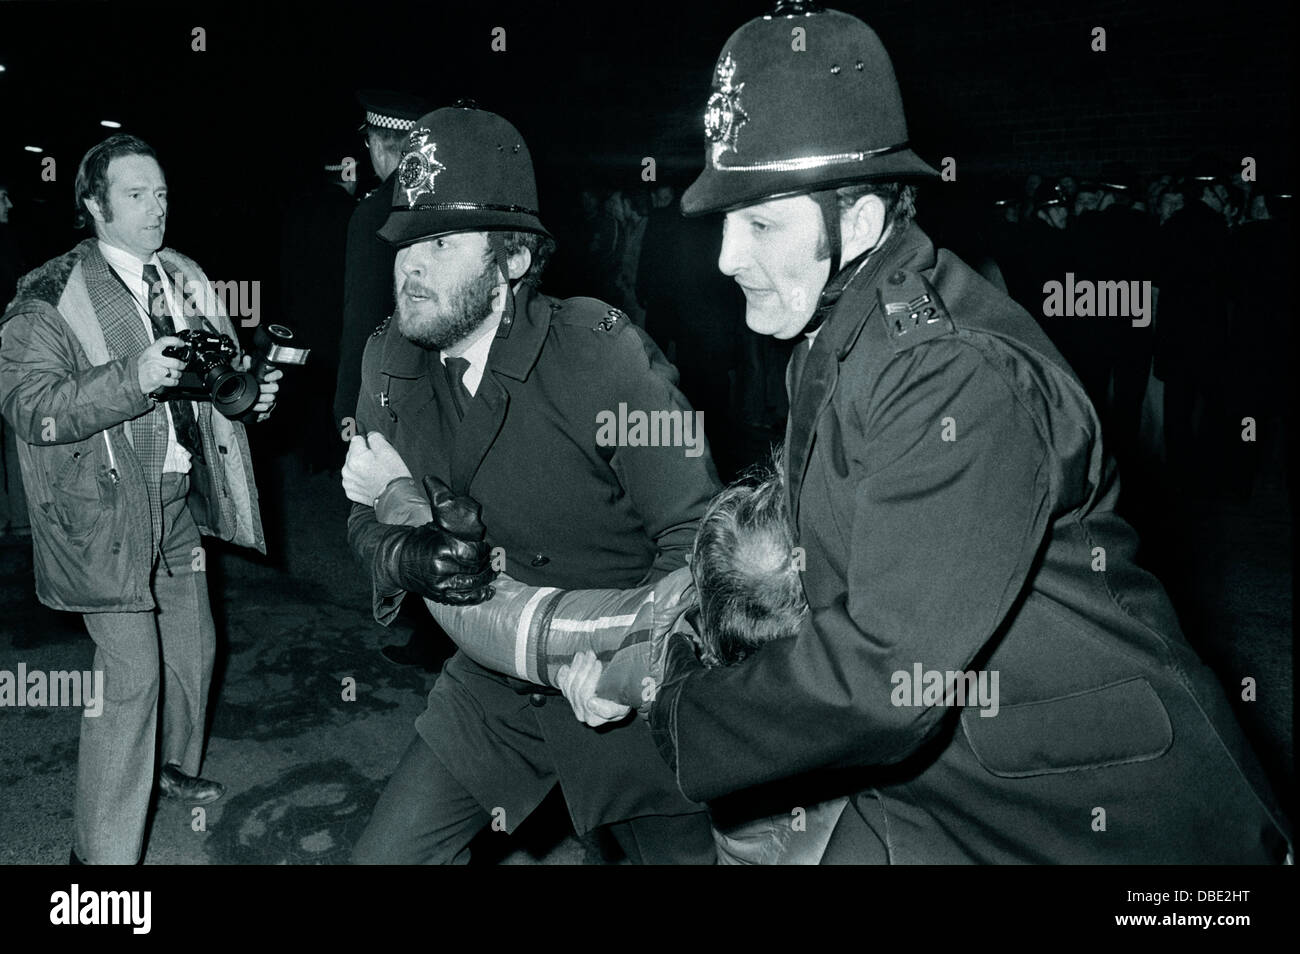 Police arrest a striking picket at Hadfields private steel works in Sheffield during the 1980 National Steel Strike - Stock Image